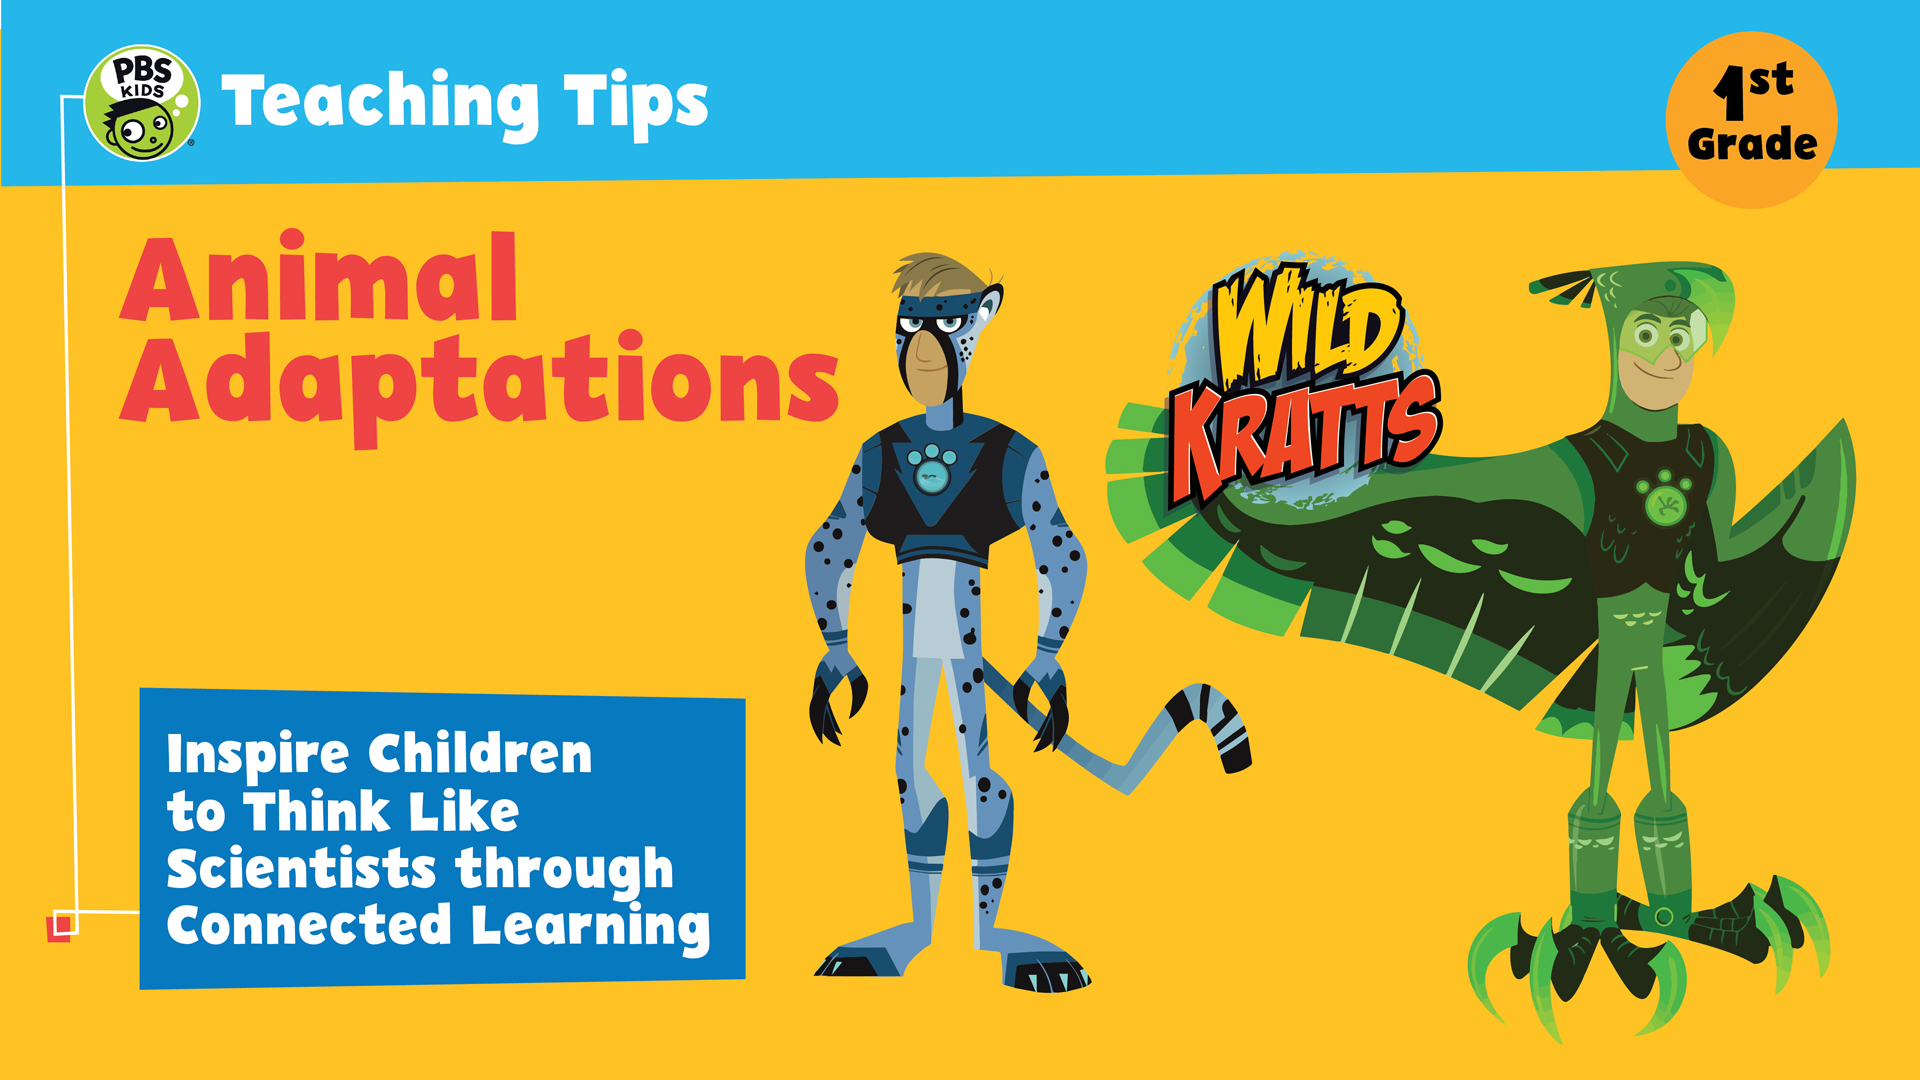 hight resolution of Animal Adaptations   Teaching Tips   PBS LearningMedia